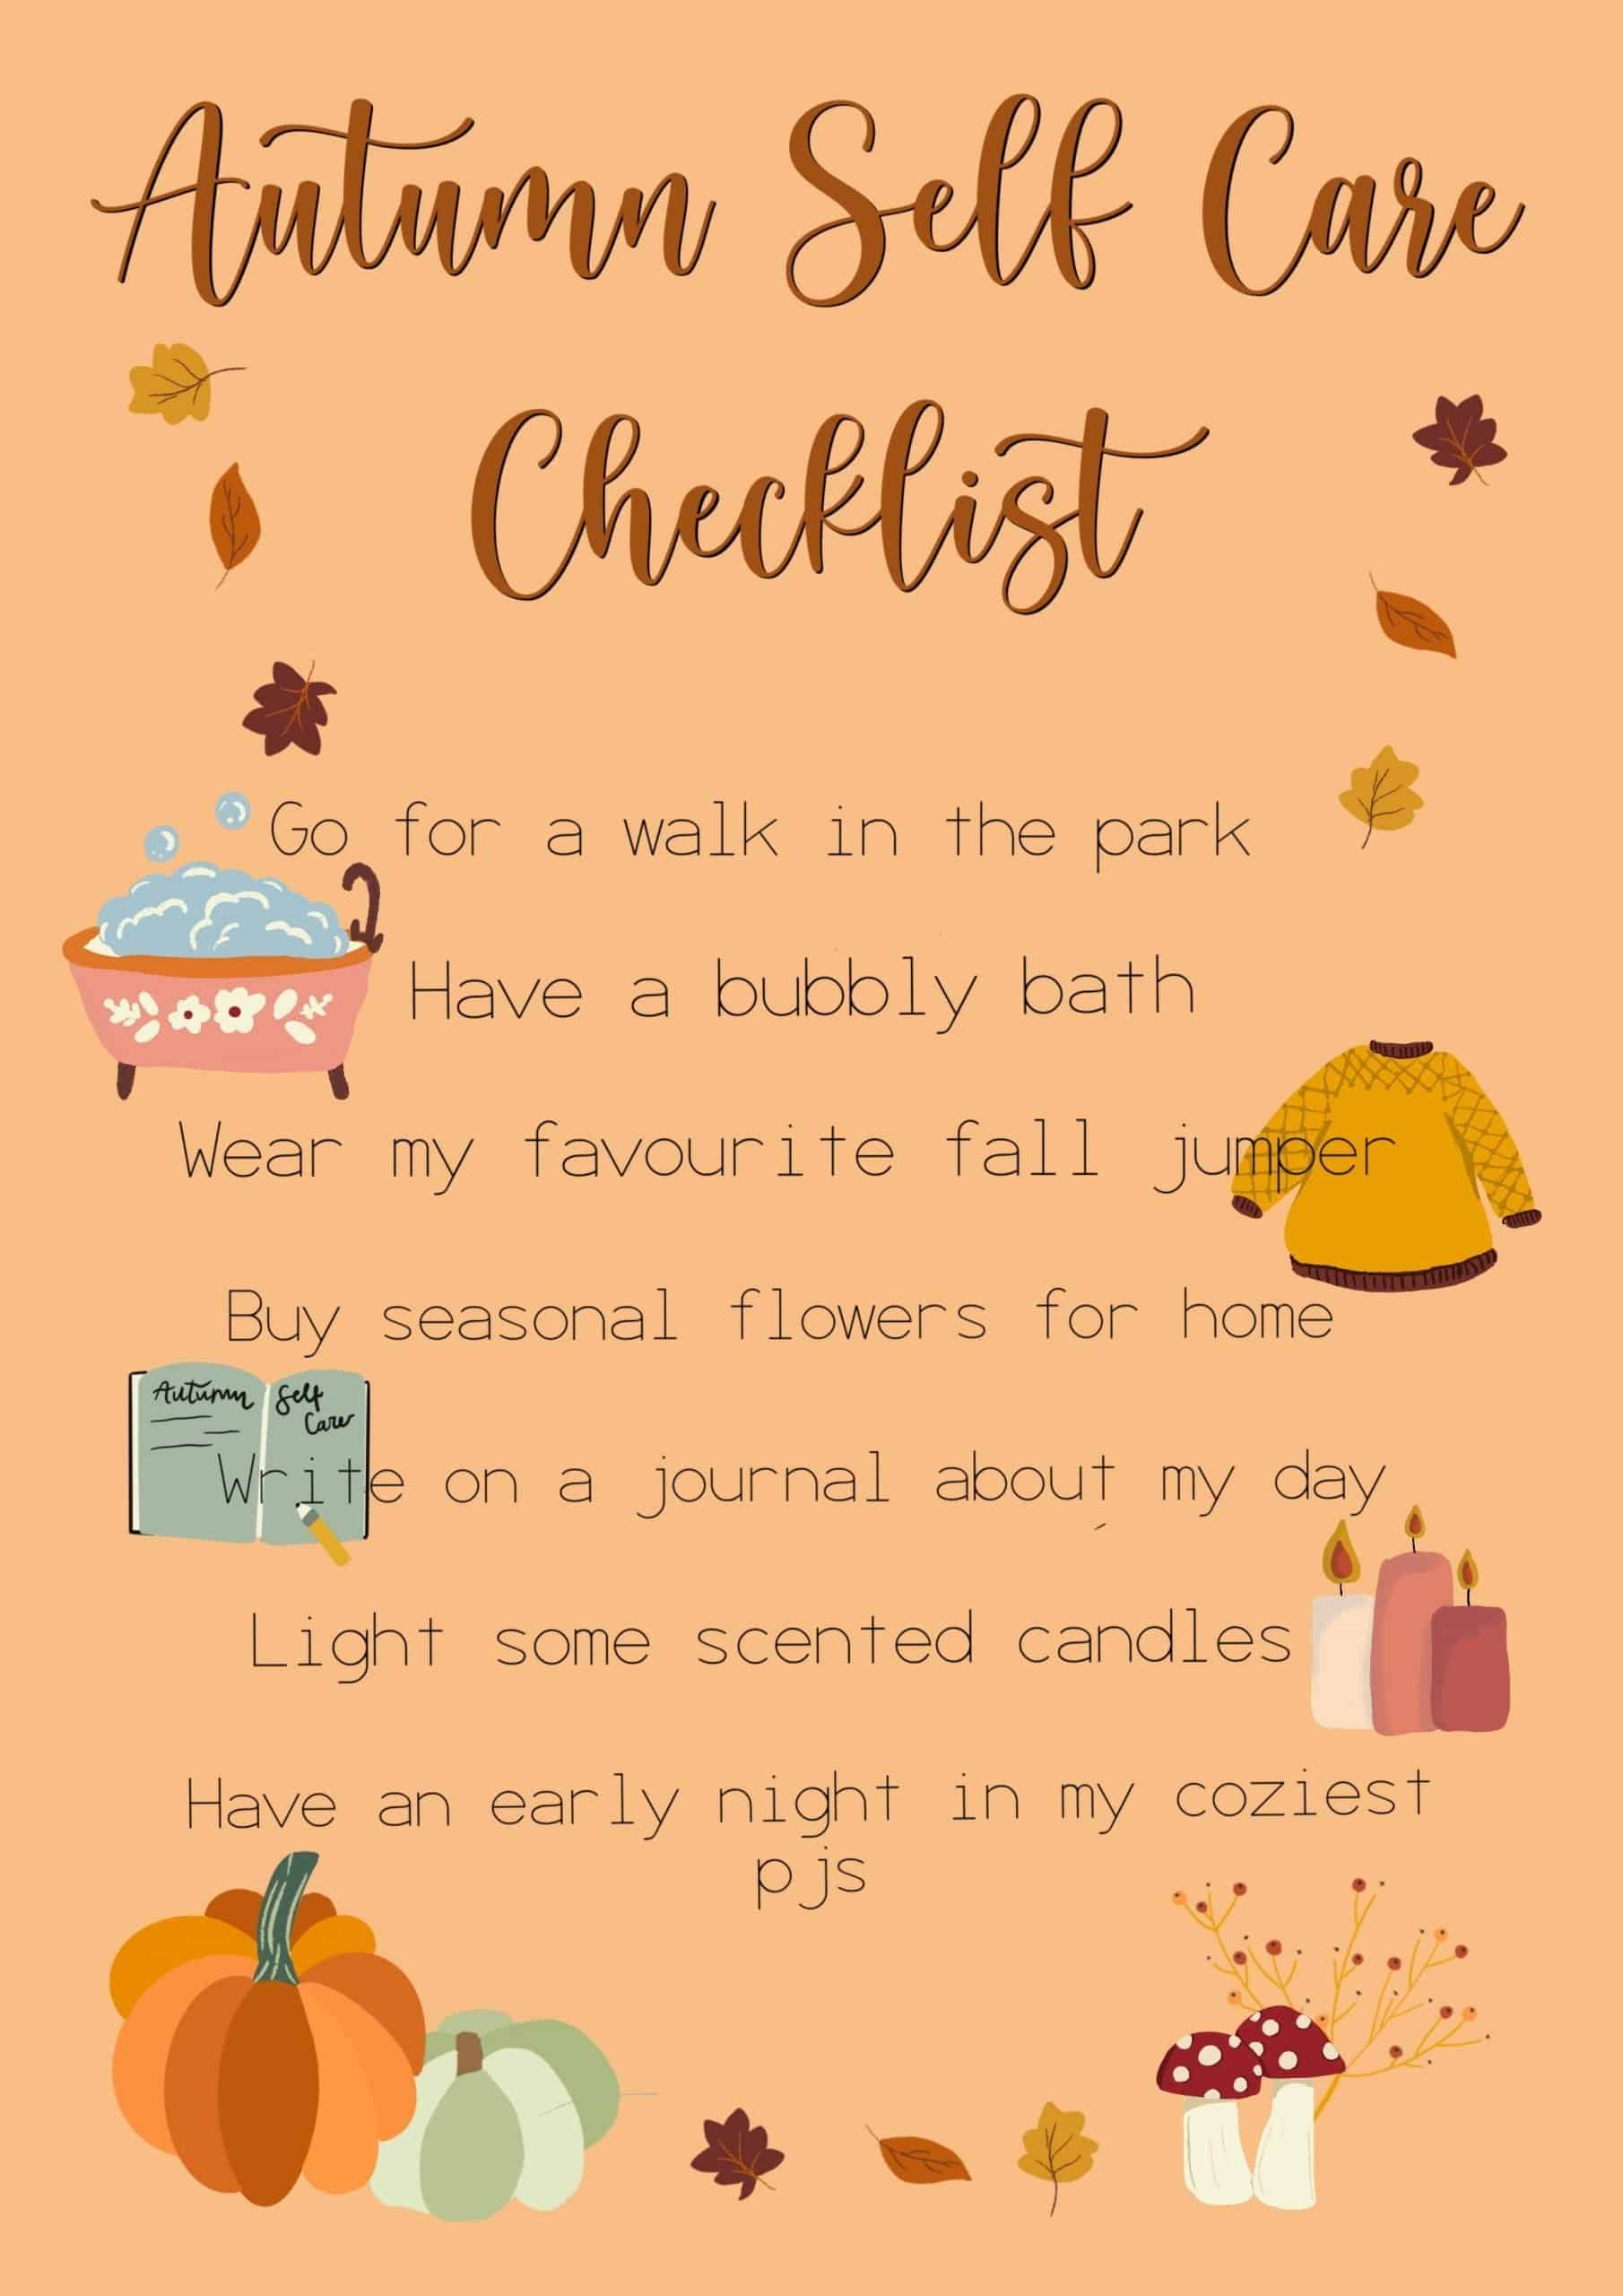 Autumn Self Care Checklist